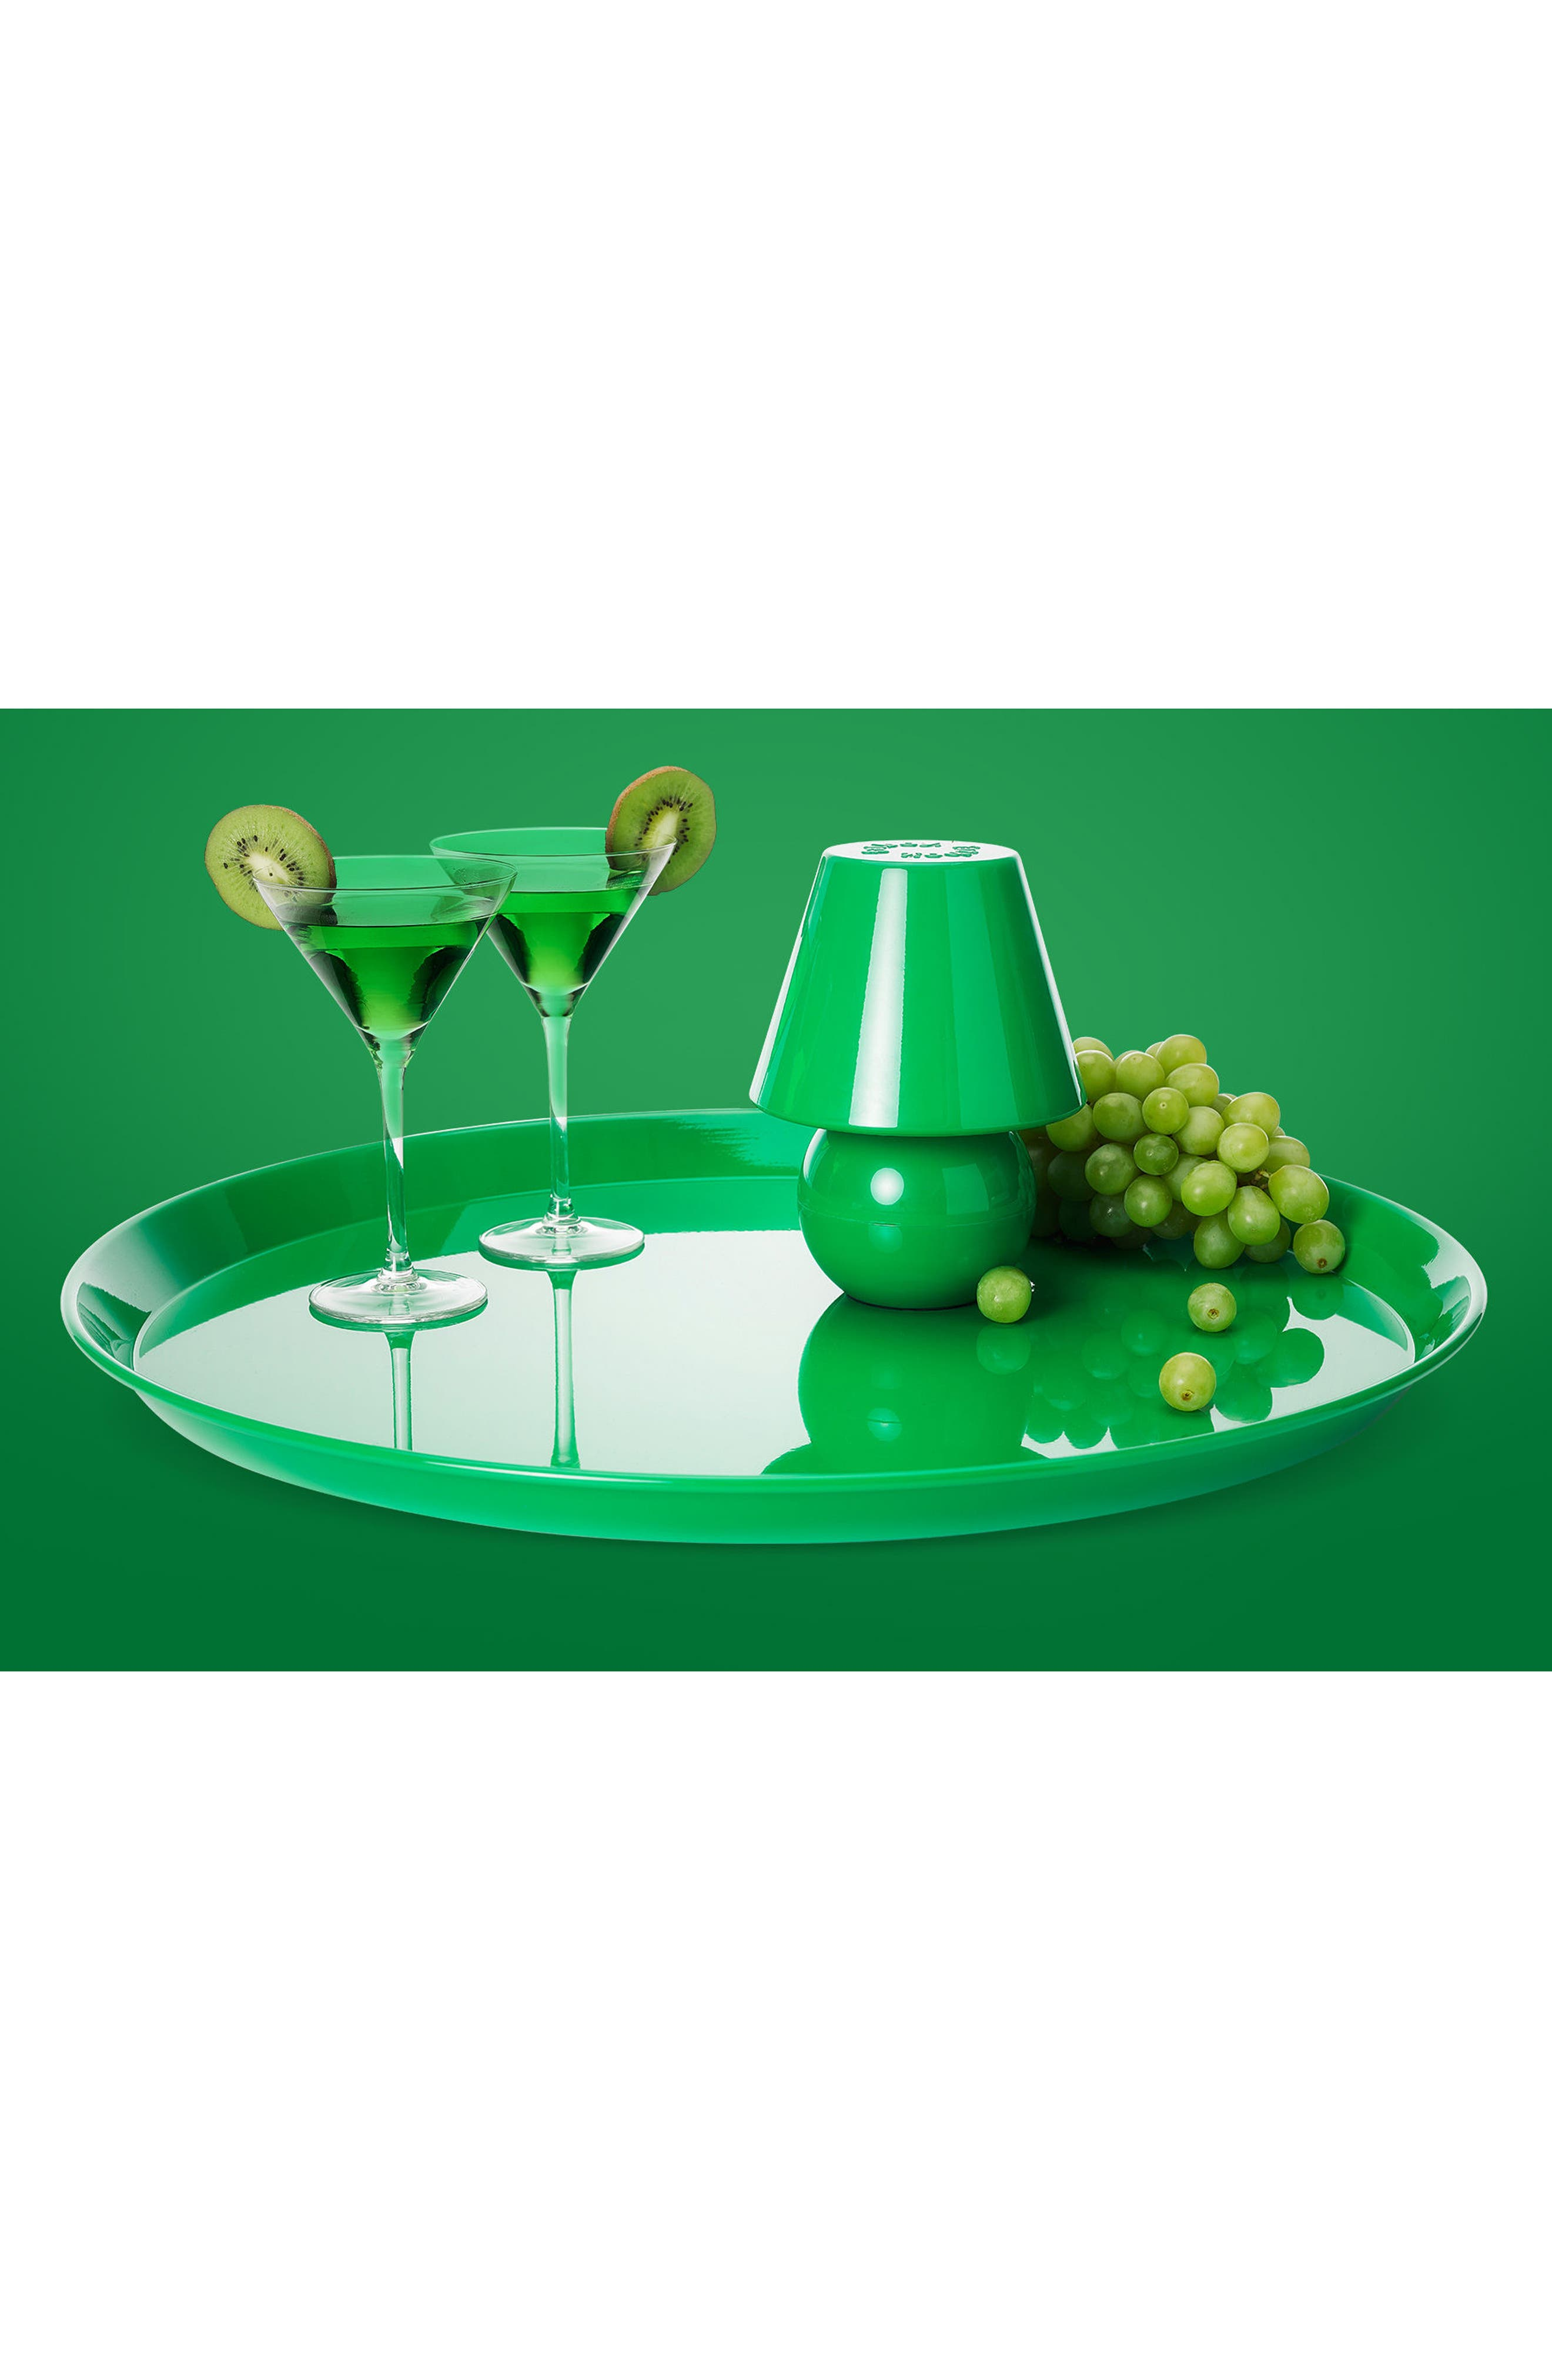 Snacklight Serving Tray,                             Alternate thumbnail 3, color,                             Green